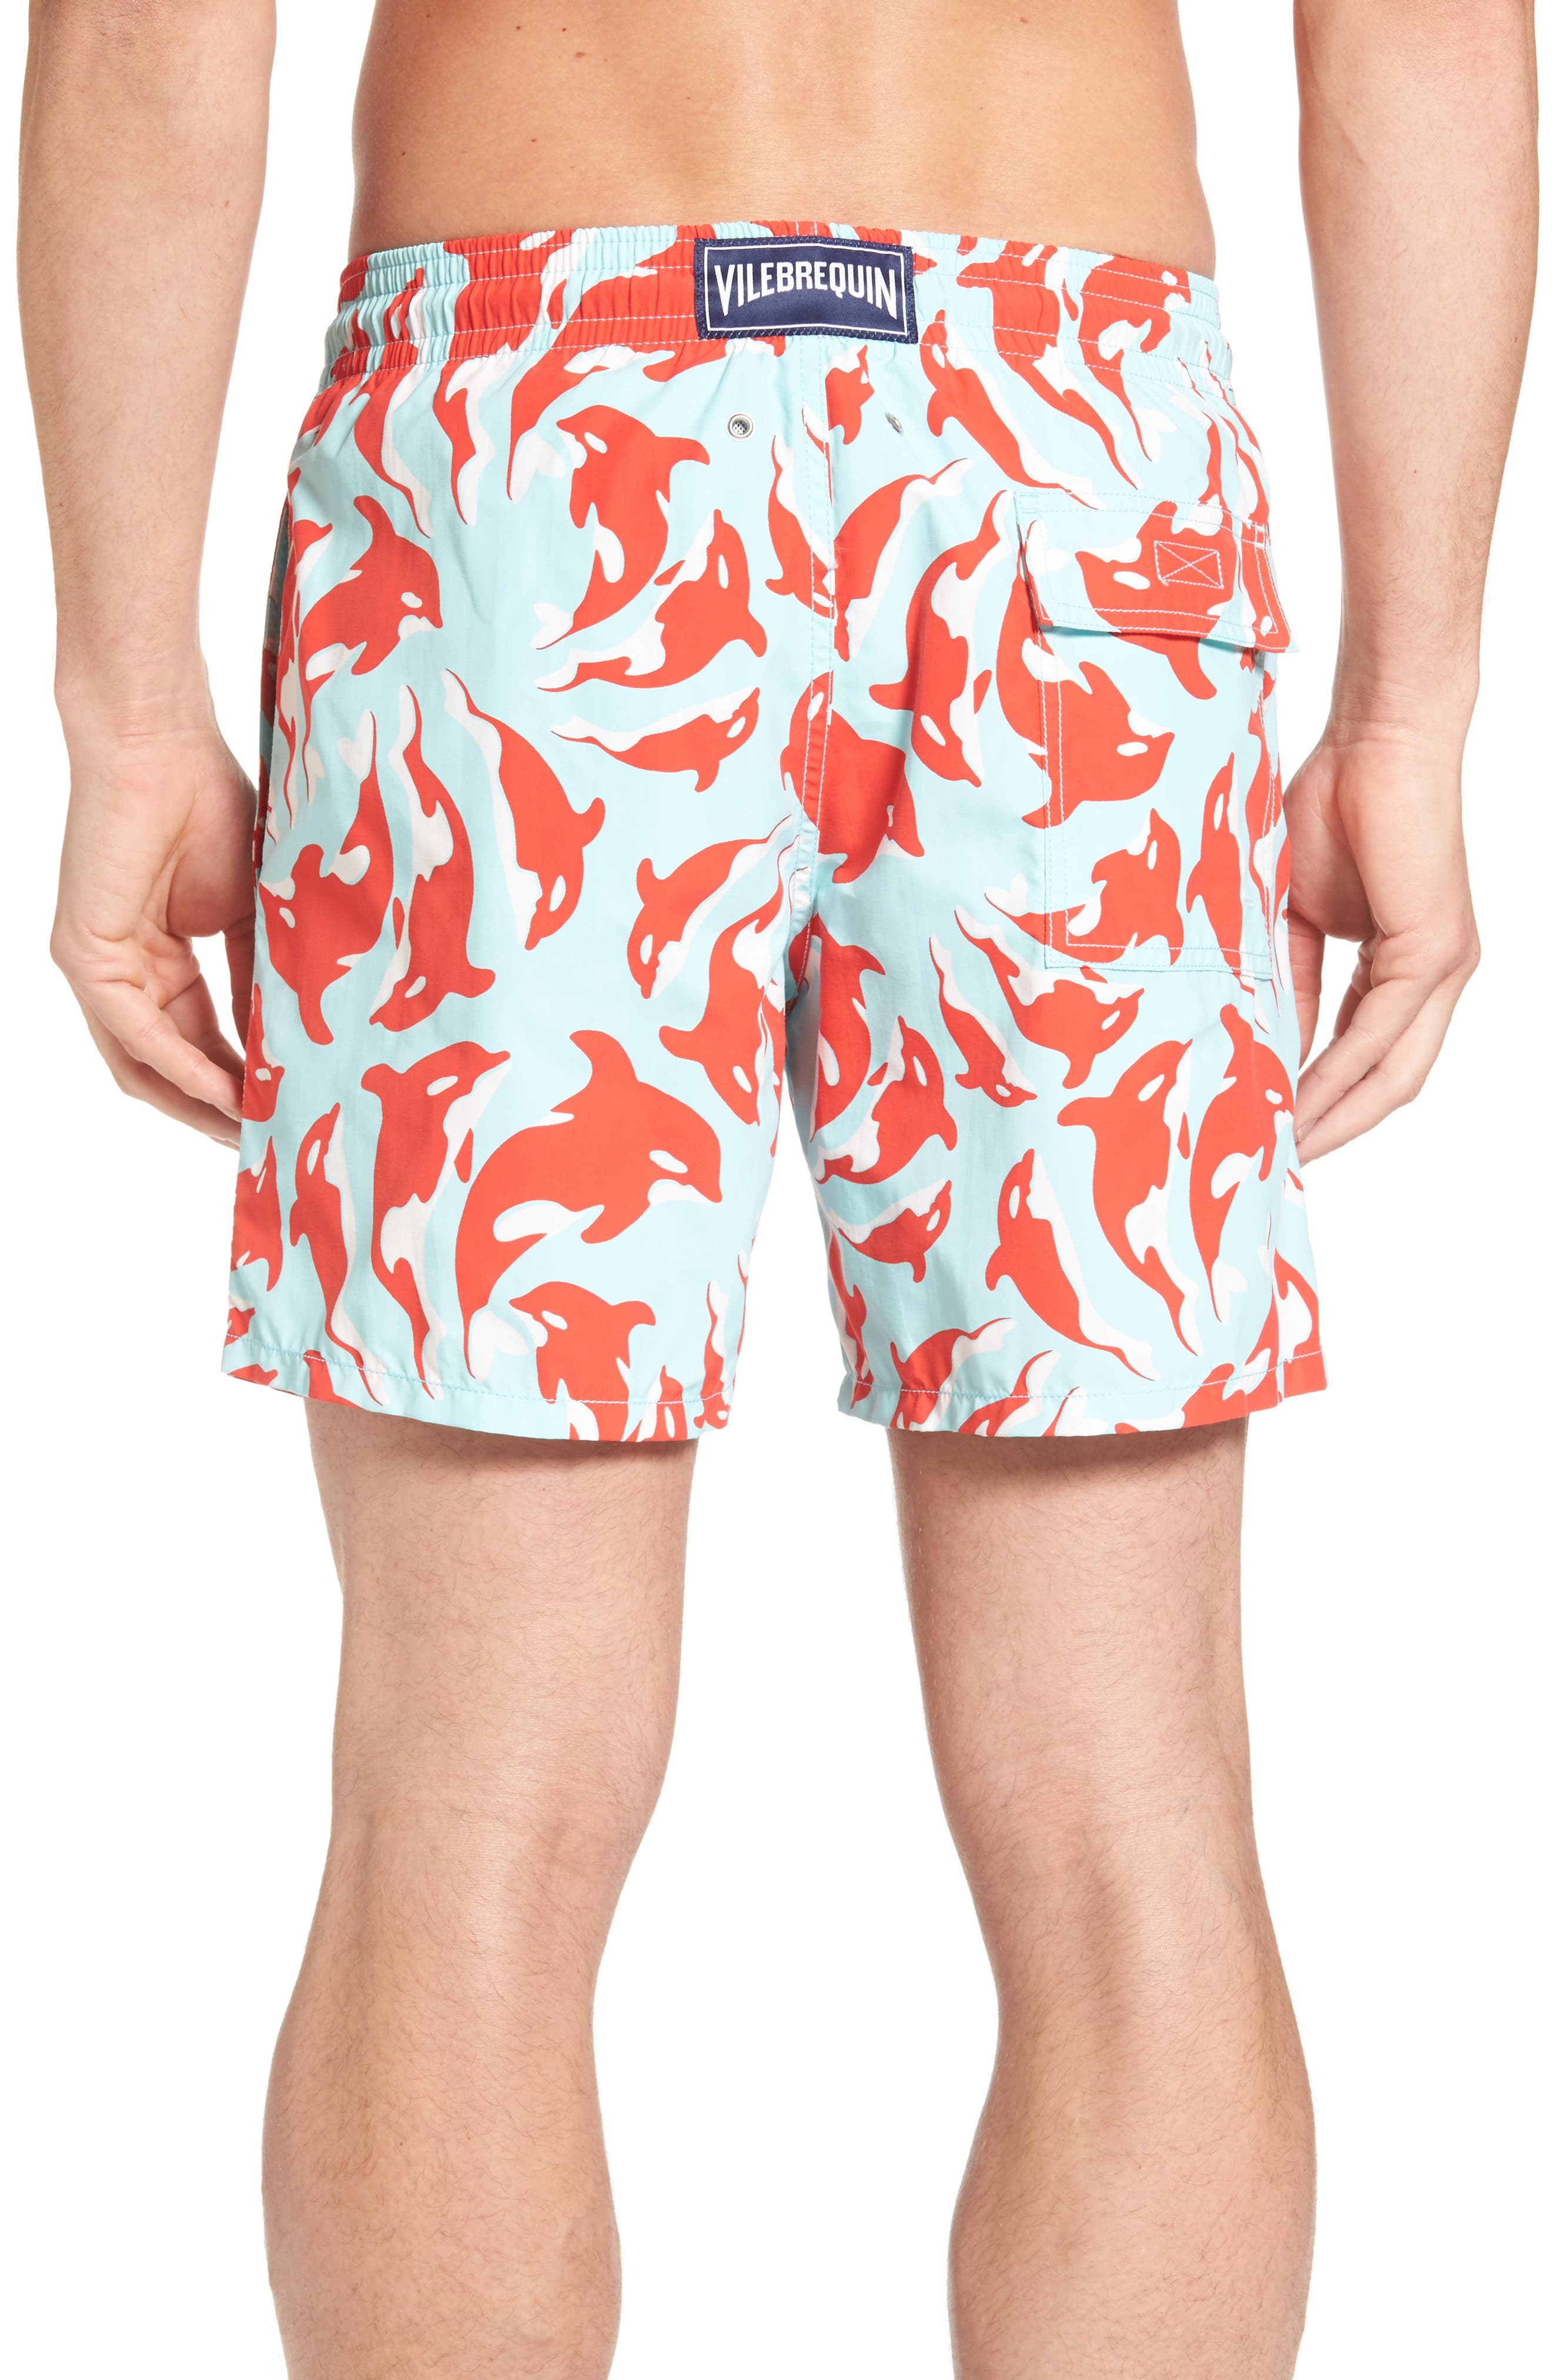 Moorea Galaks Print Swim Trunks,                             Alternate thumbnail 2, color,                             FROSTED BLUE